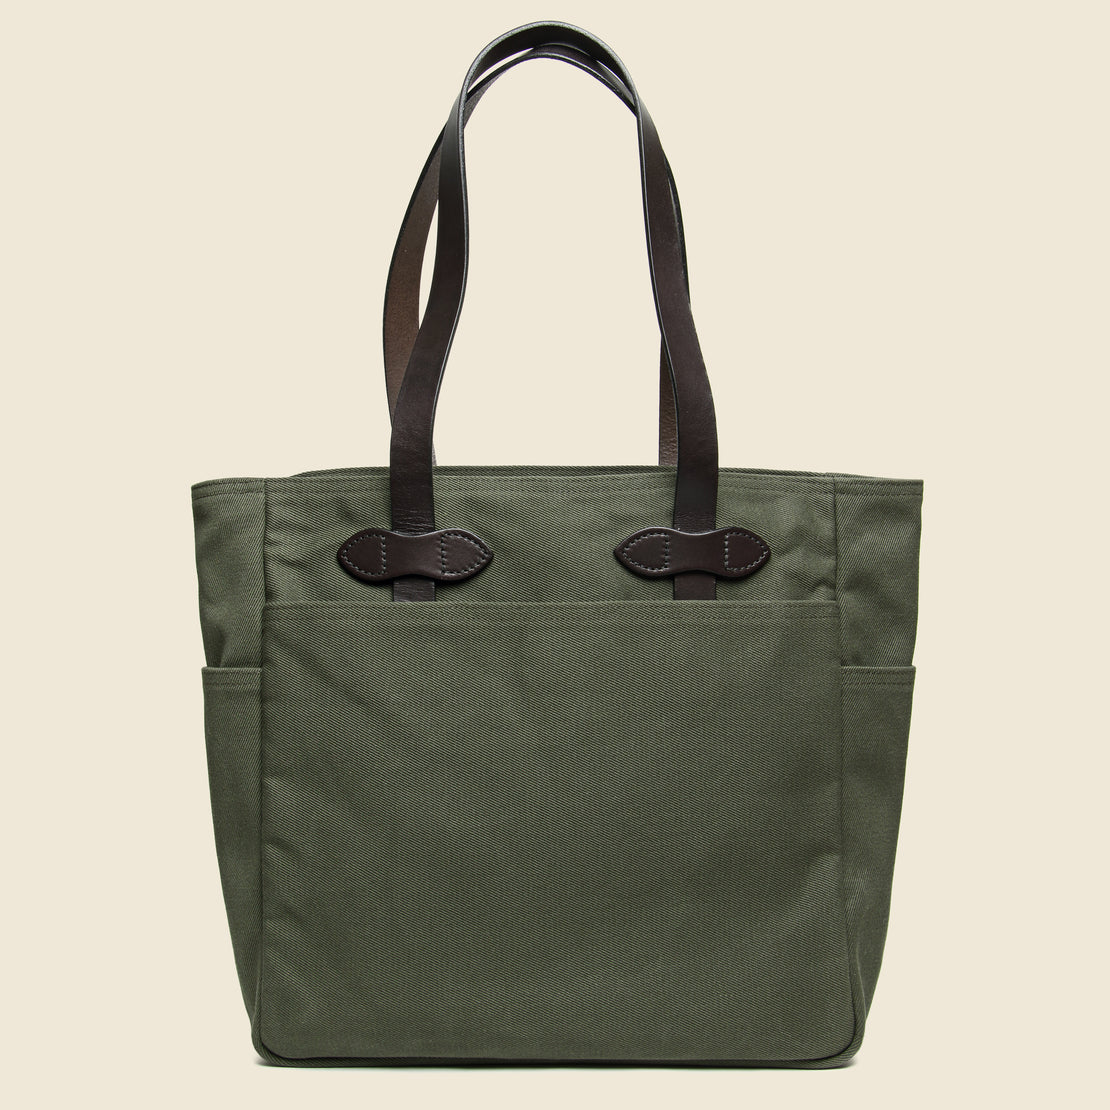 Filson Rugged Twill Tote Bag - Otter Green